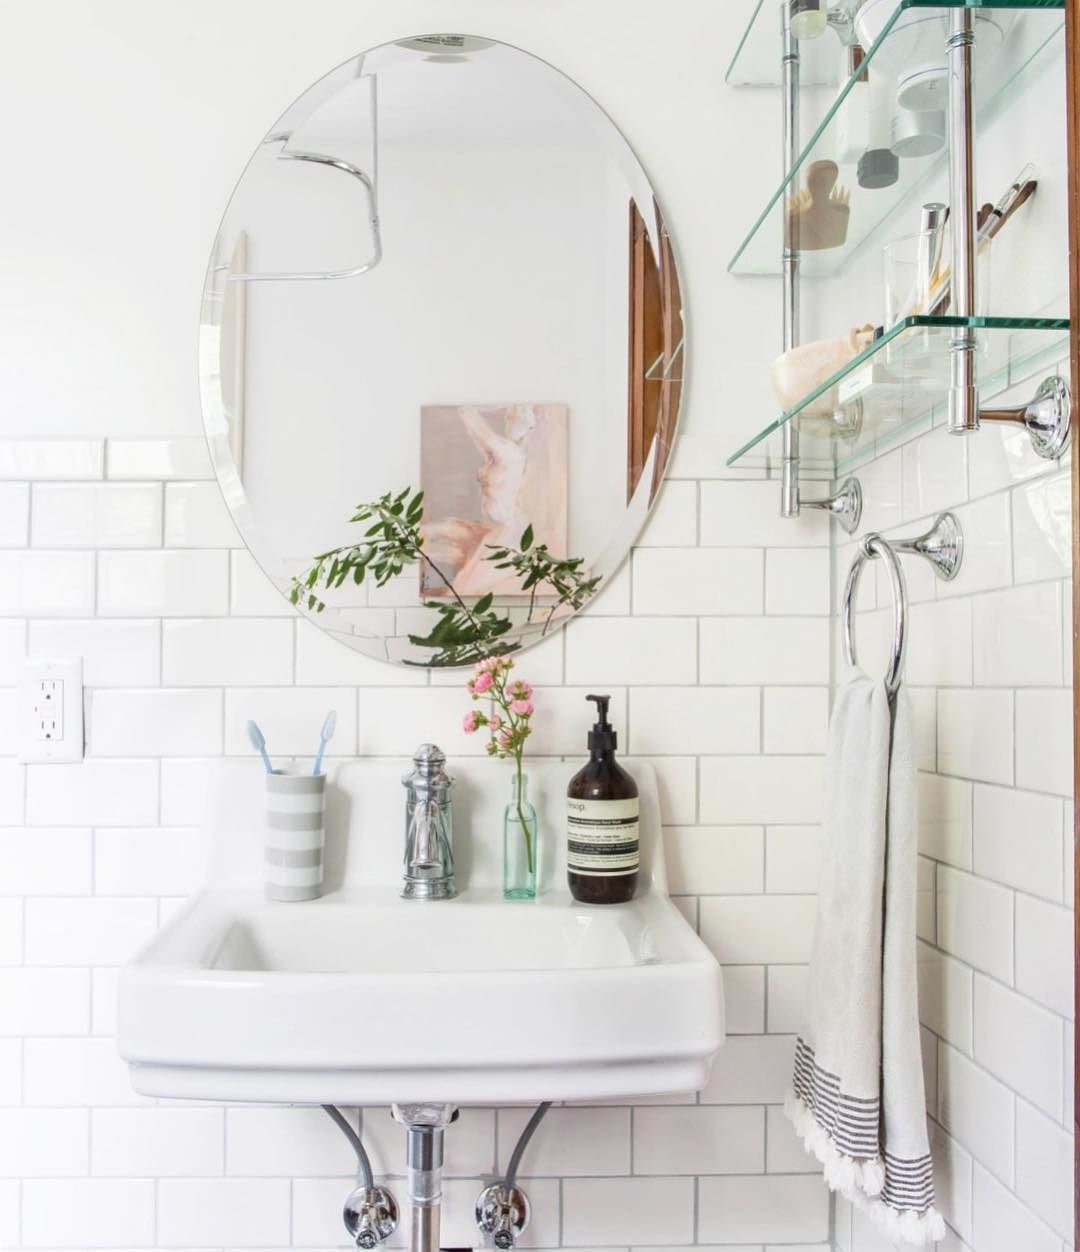 8 Bathroom Mirror Ideas You Might Not Have Thought Of | Bathroom ...